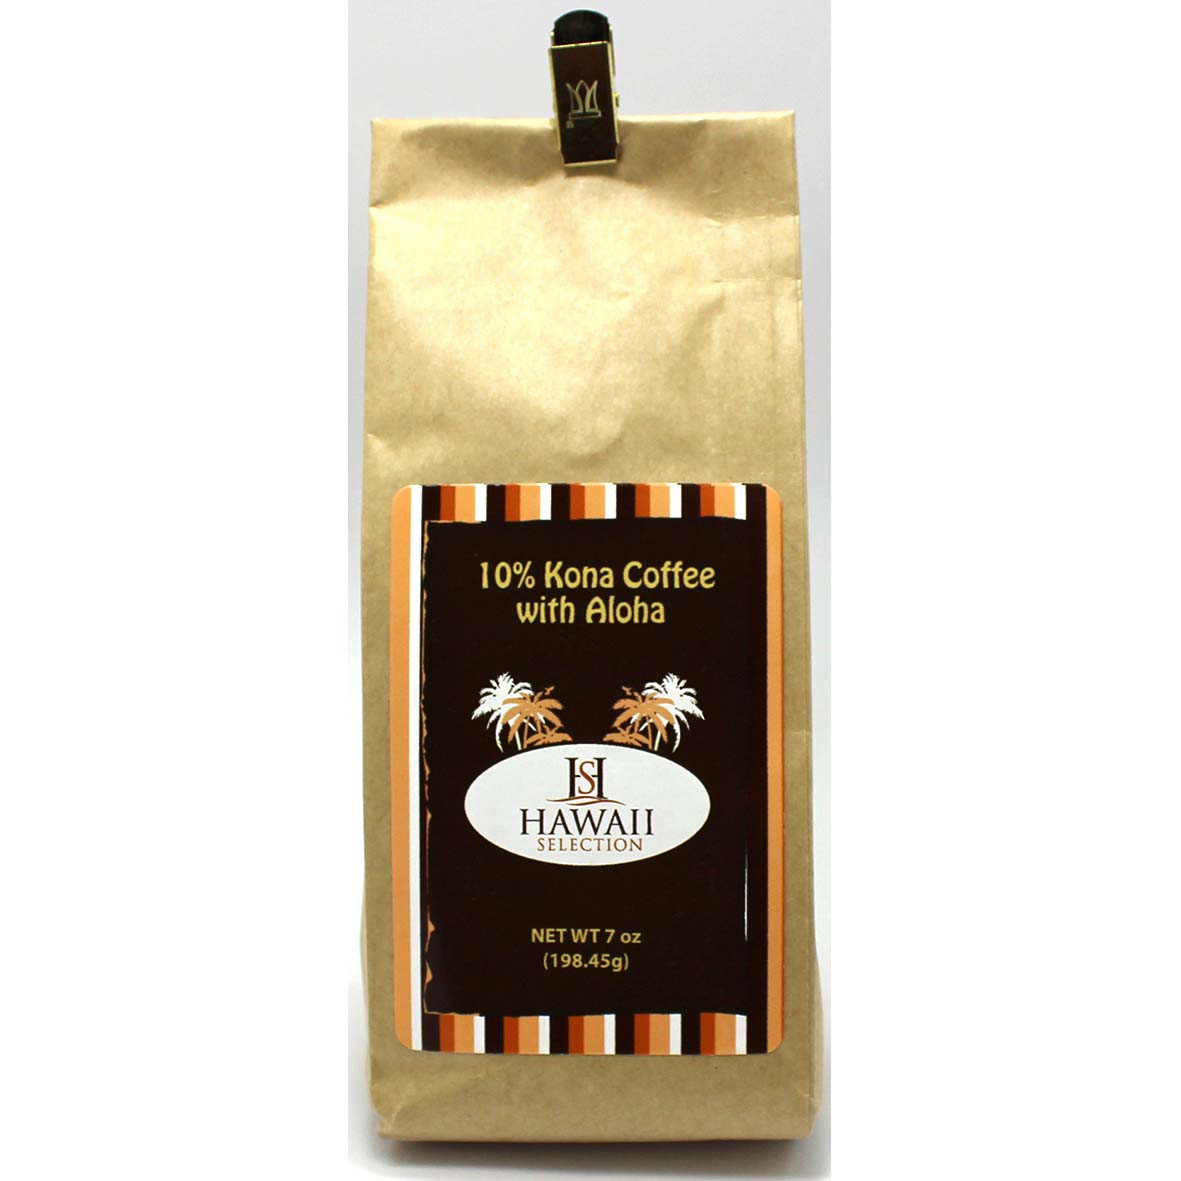 �h�����N�E��i/ �yHAWAII SELECTION�z KONA COFFEE 10% / �R�i�R�[�q�[ 7oz